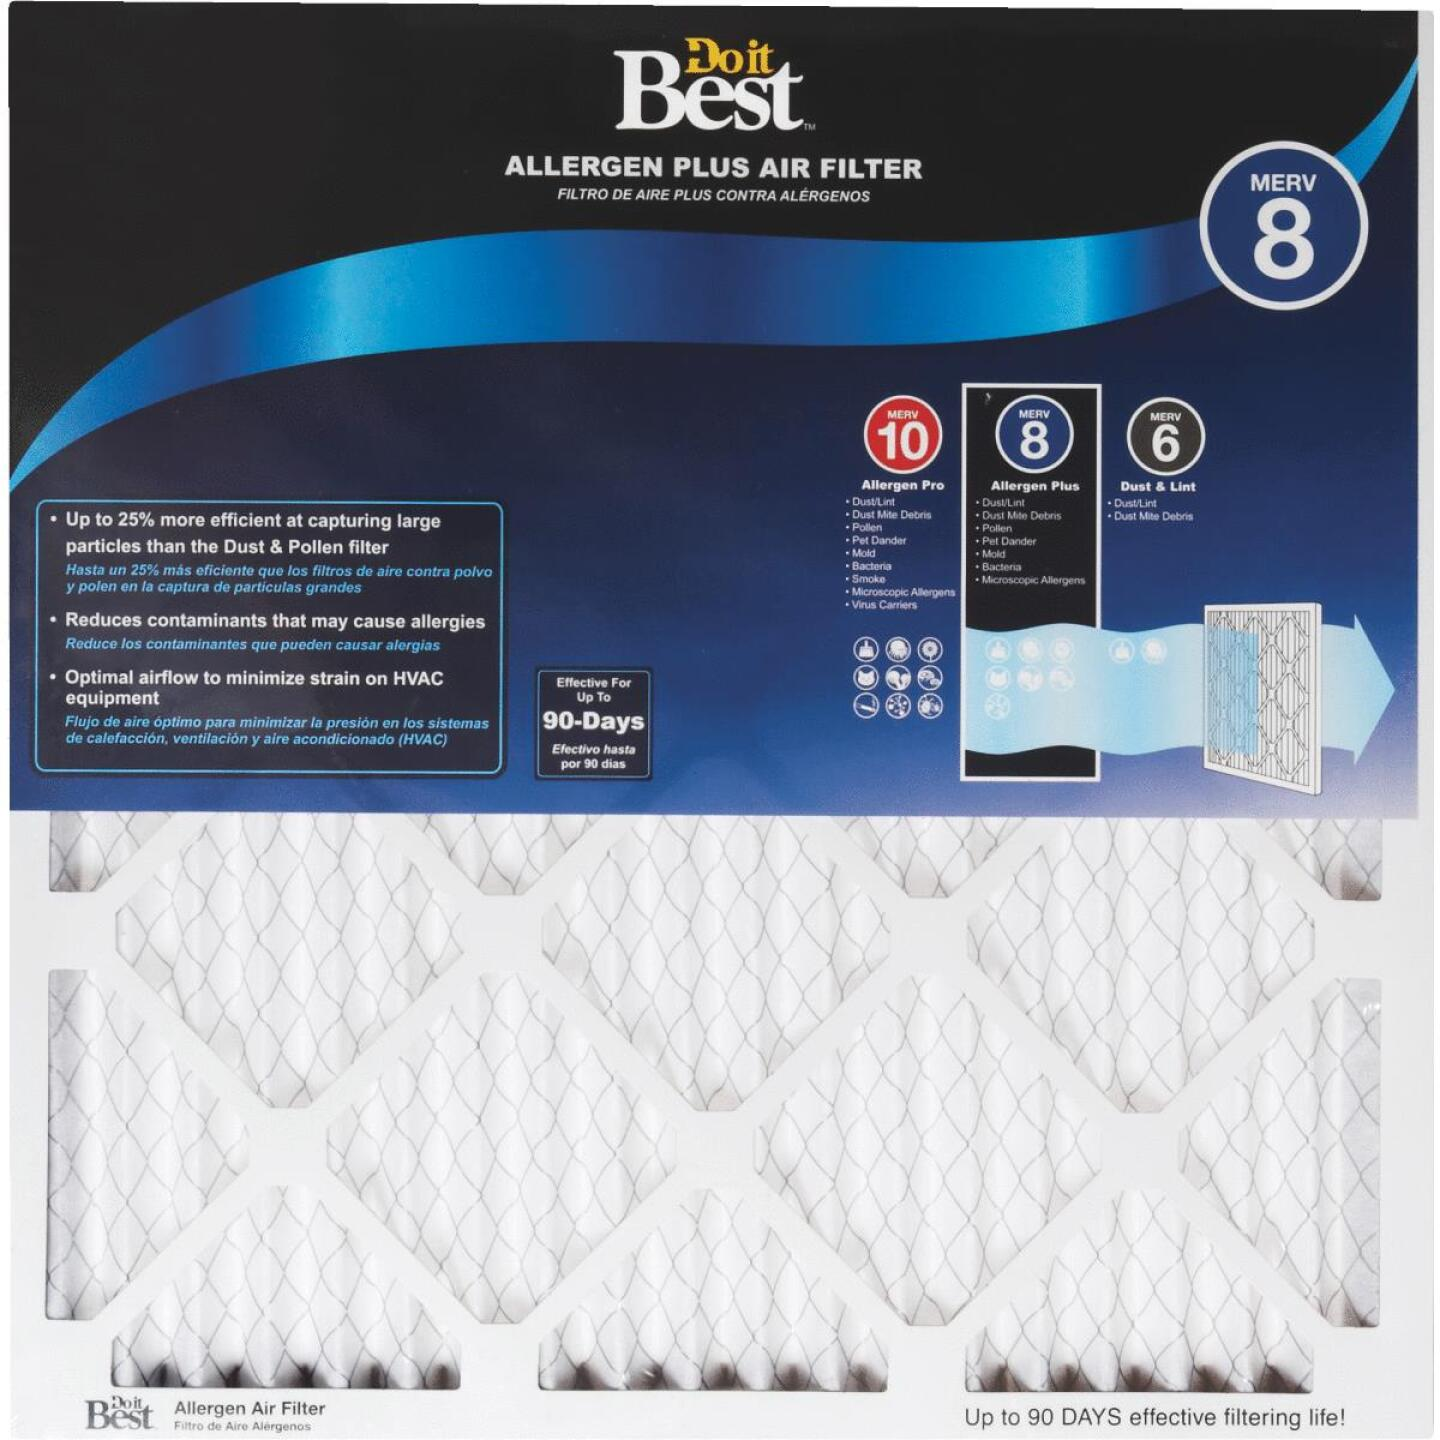 Do it Best 20 In. x 25 In. x 1 In. Allergen Plus MERV 8 Furnace Filter Image 1